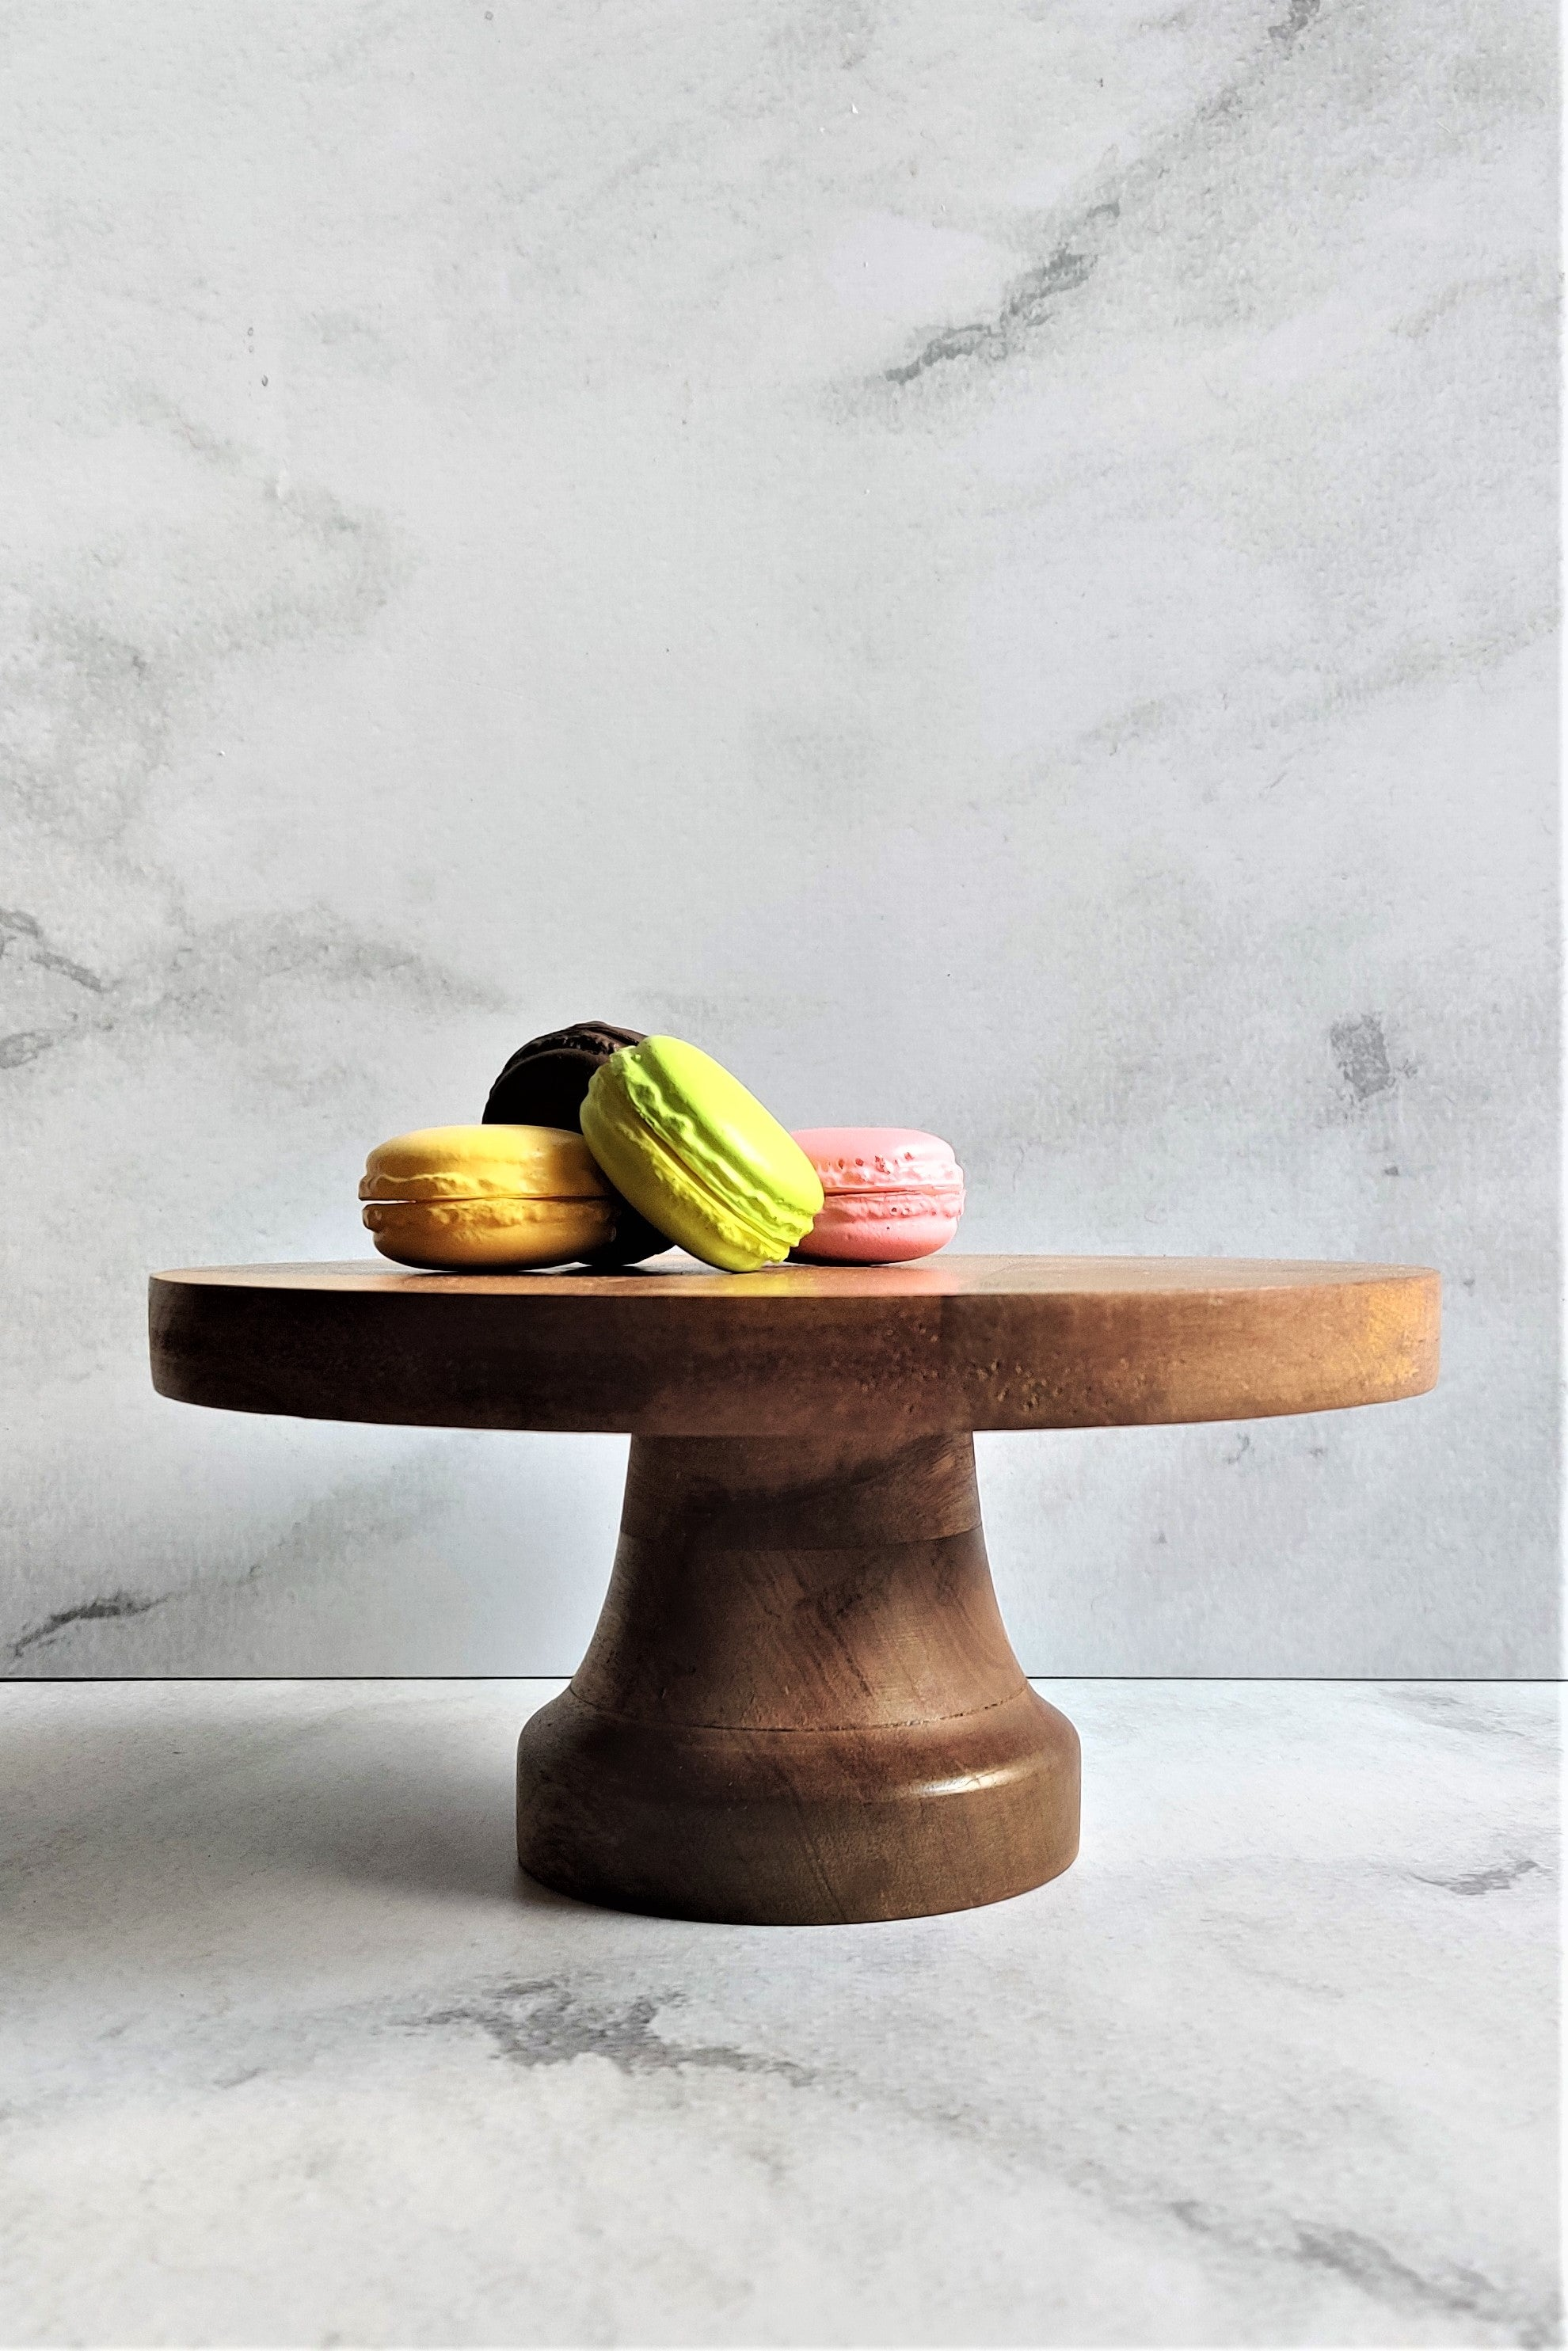 Rustic Wooden Handcrafted Cake Stand - Go-Native Store